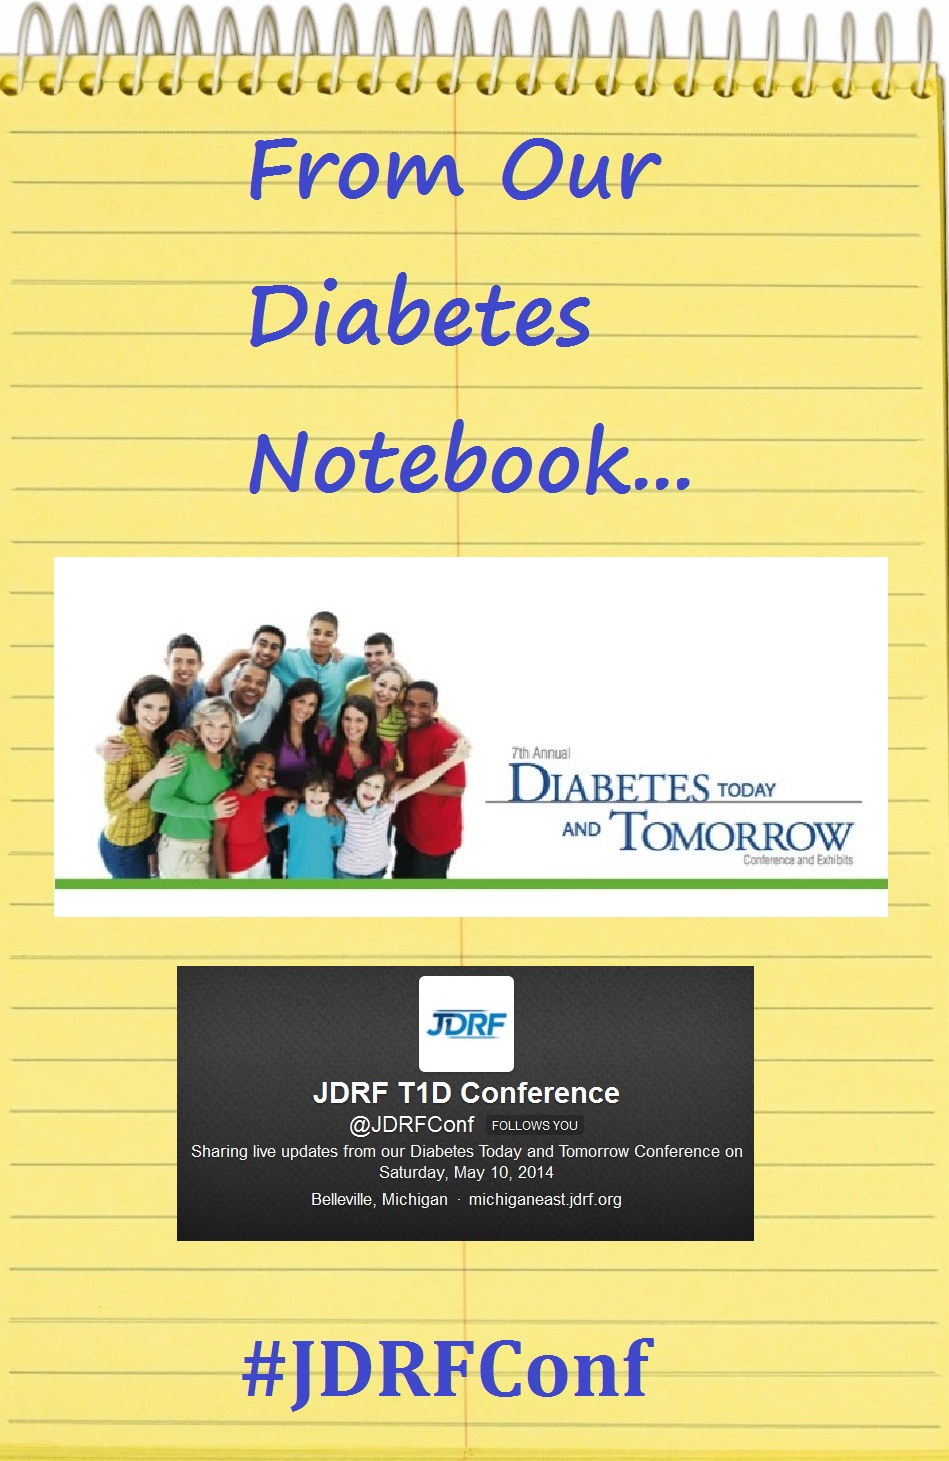 Diabetes Notebook JDRF Conf May 2014